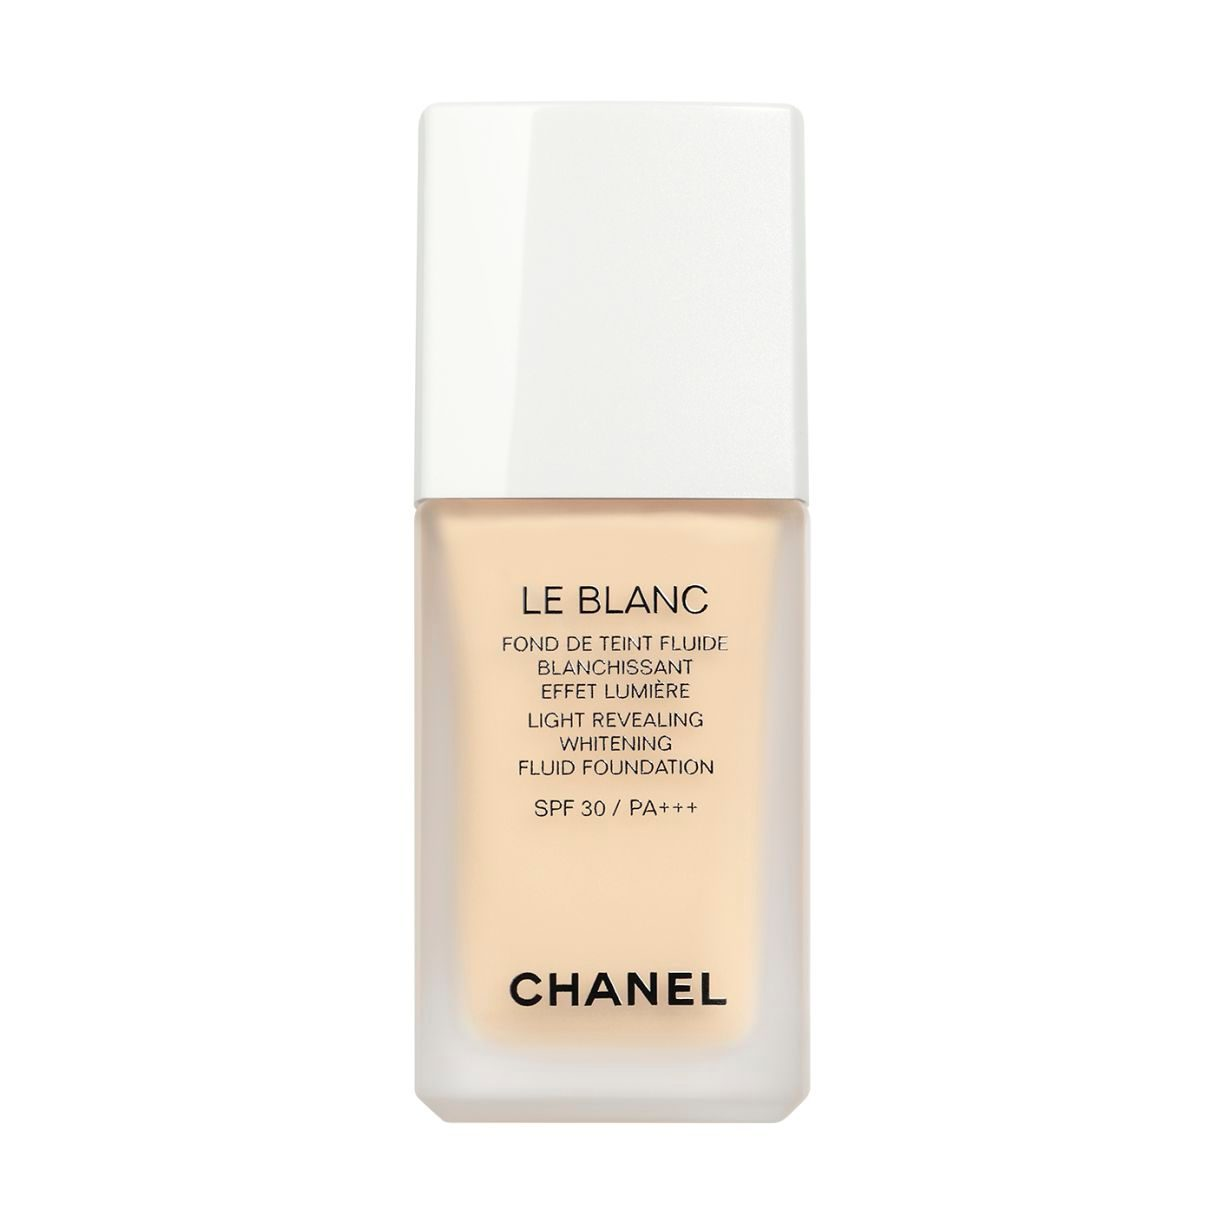 LE BLANC LIGHT REVEALING WHITENING FLUID FOUNDATION SPF 30 / PA+++